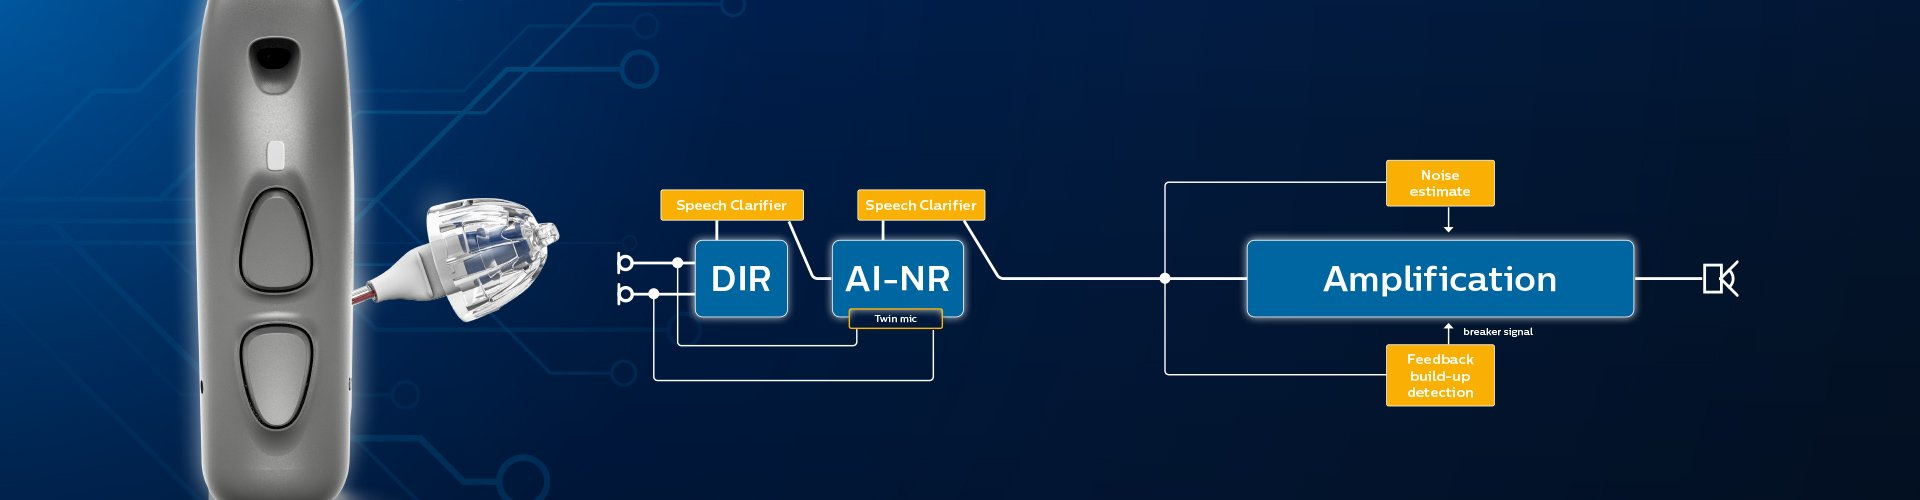 The architecture of SoundMap 2 technology – Philips HearLink hearing aids with AI sound technology.